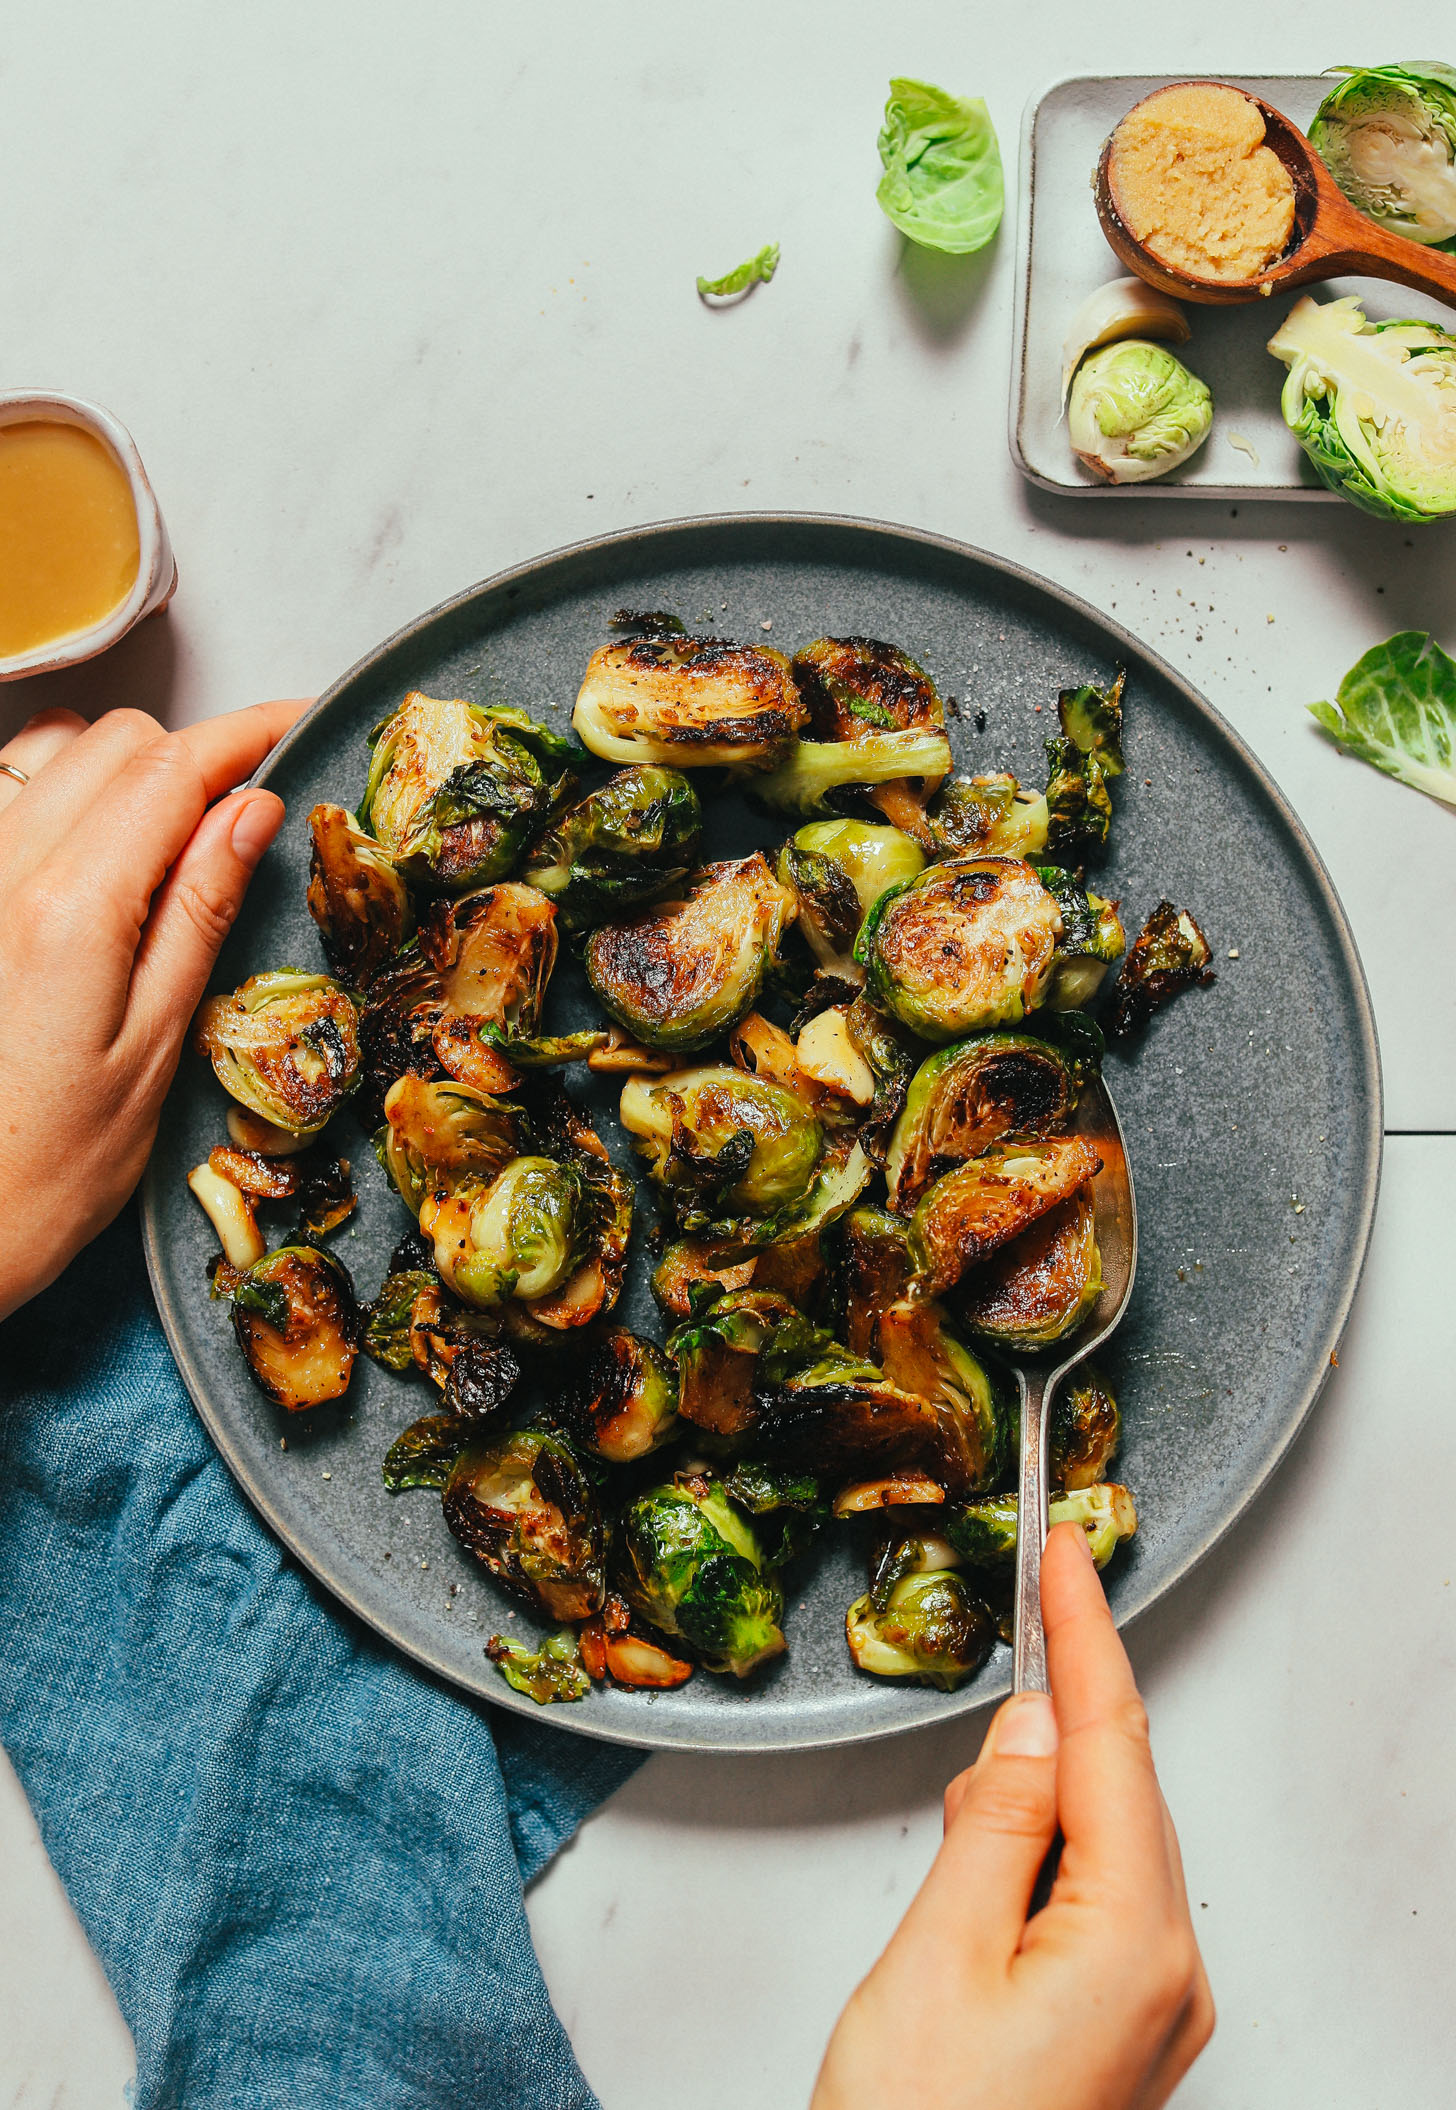 Plate of Miso-Glazed Roasted Brussels Sprouts beside ingredients used to make them